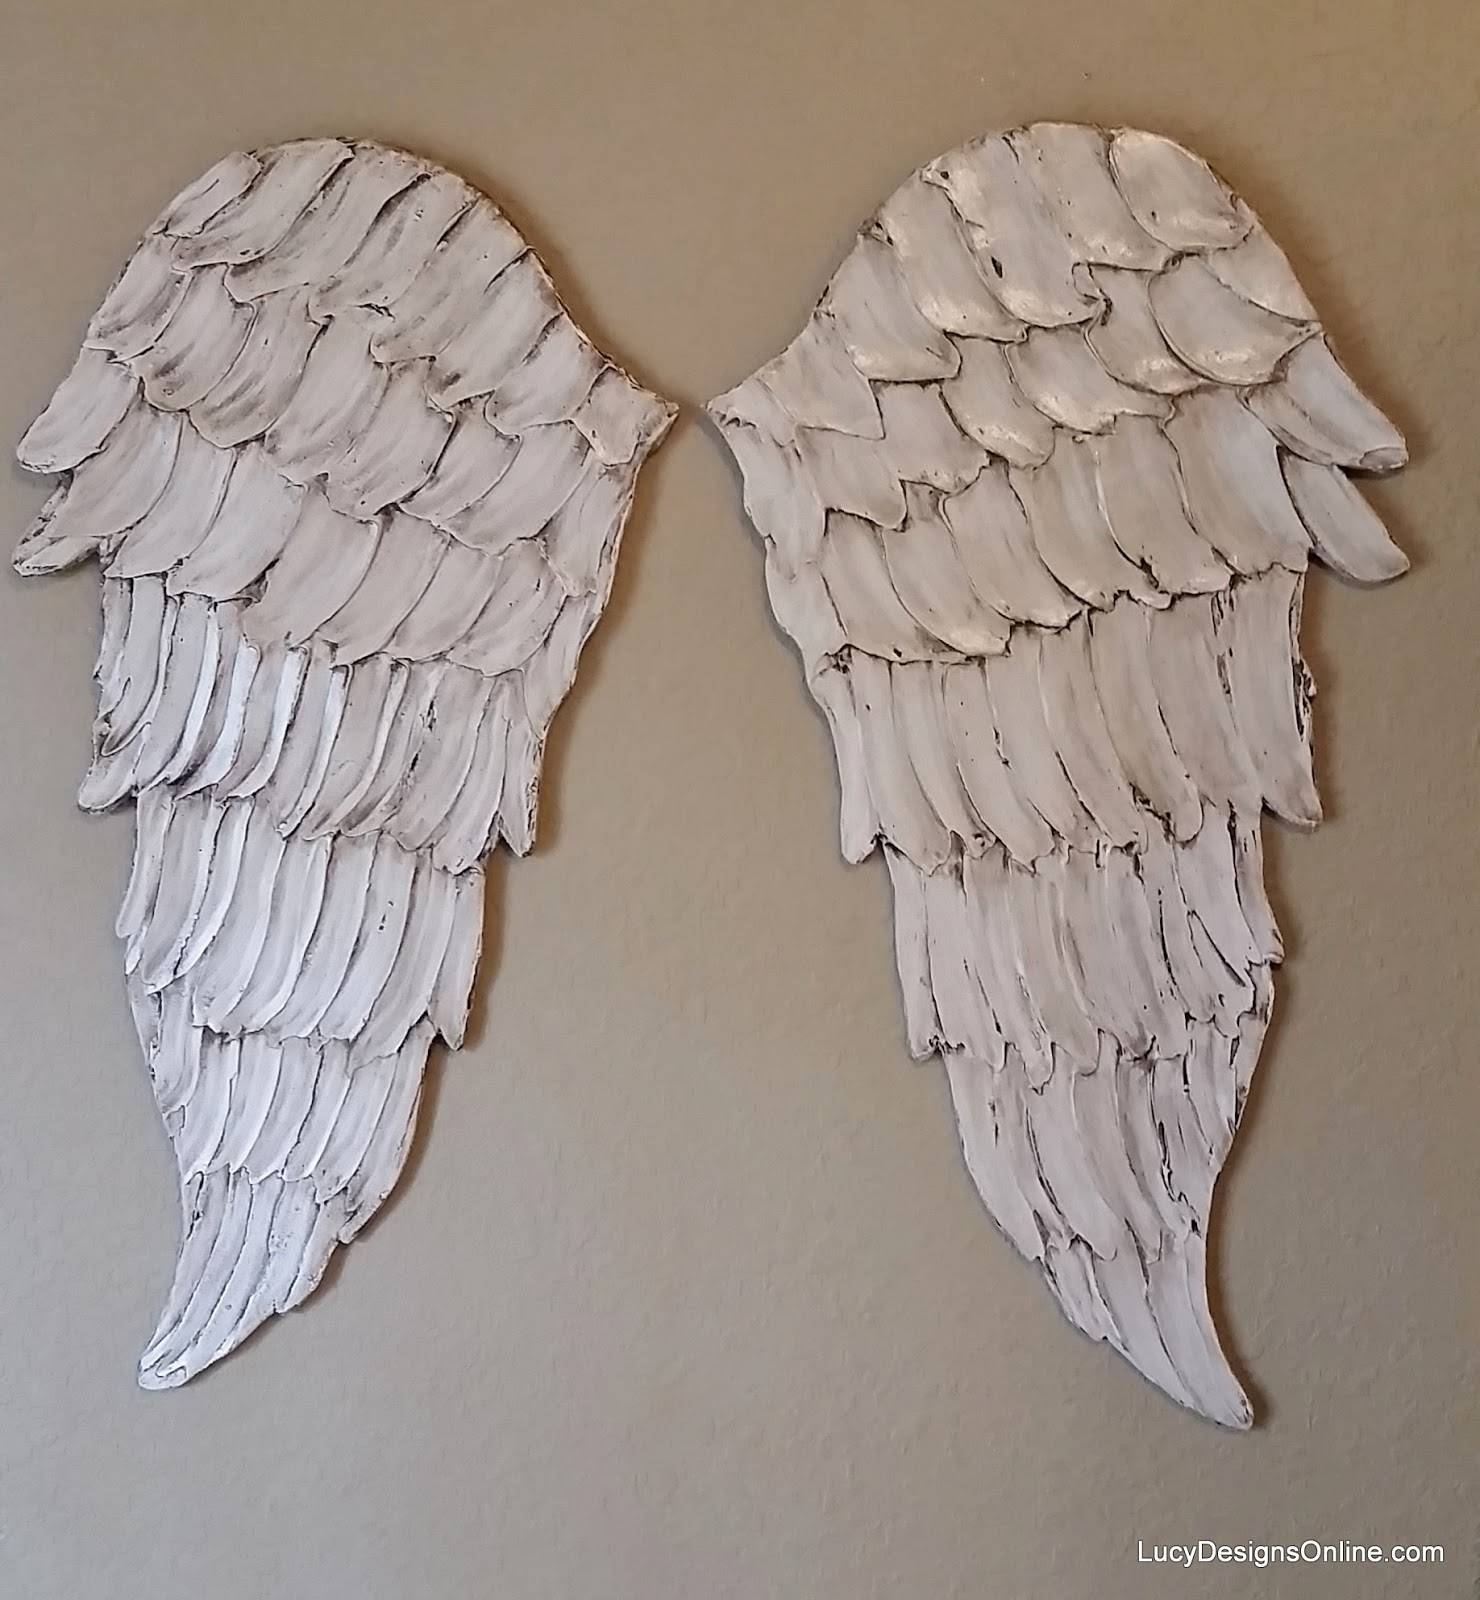 Angel Wings Textured Wood, Wall Art, Carved Wood Look, Angel Wing With Recent Angel Wings Wall Art (View 9 of 20)